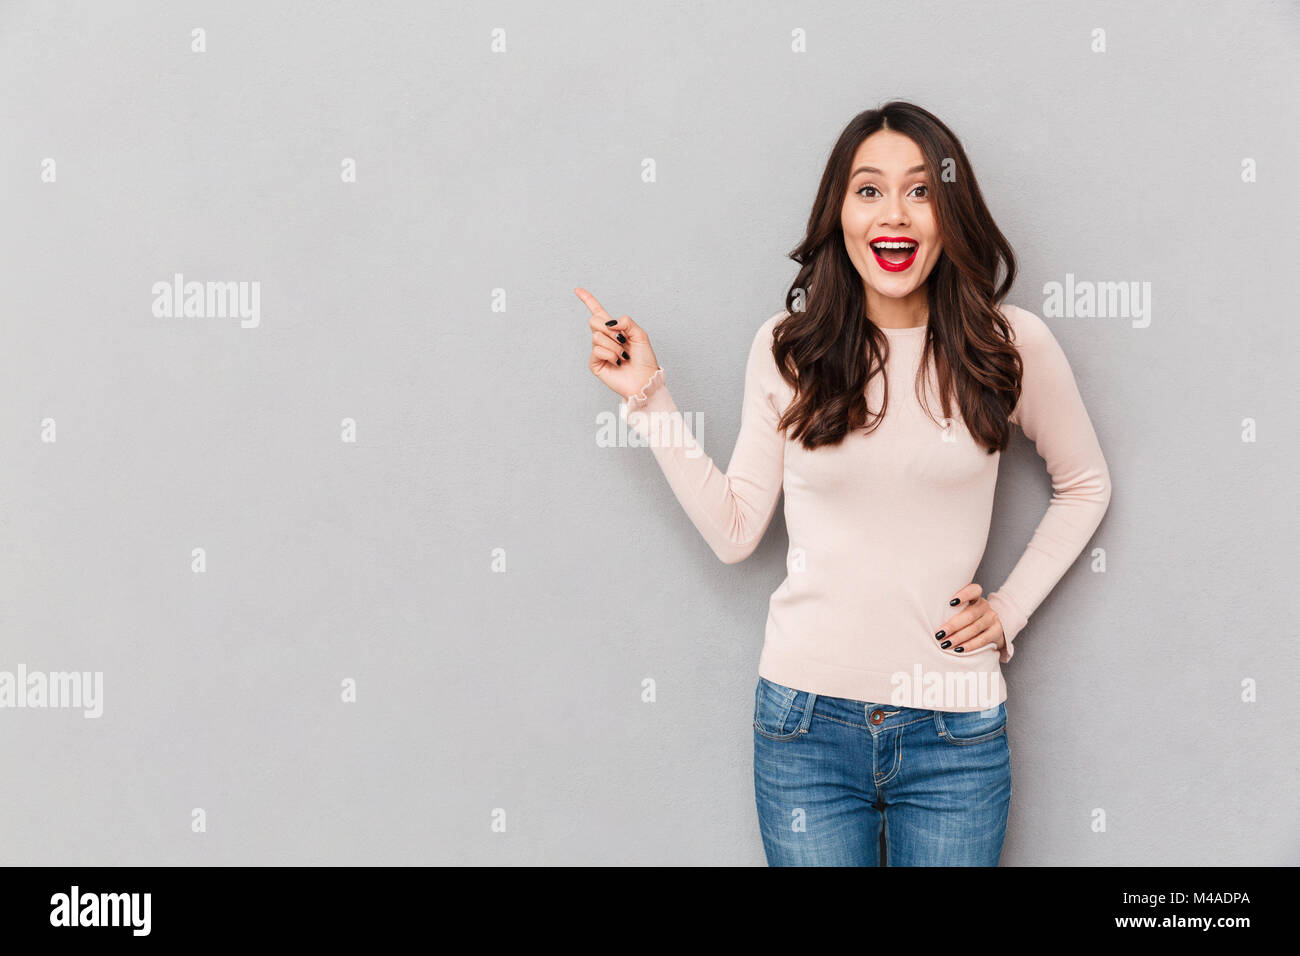 Image of pretty excited girl with brown hair pointing index finger aside showing or paying attention on something, - Stock Image